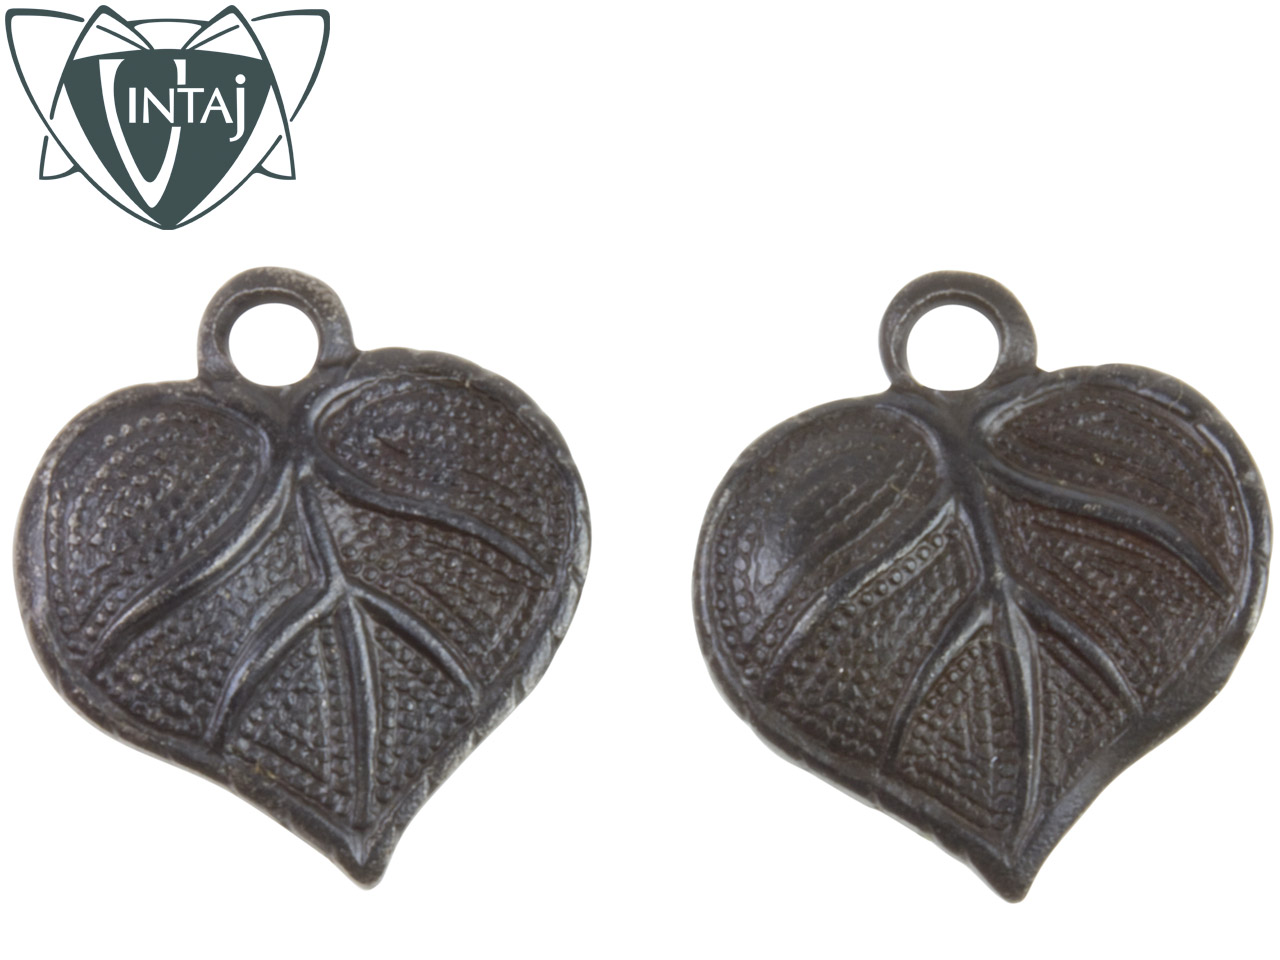 Vintaj Arte Metal Heart Leaf